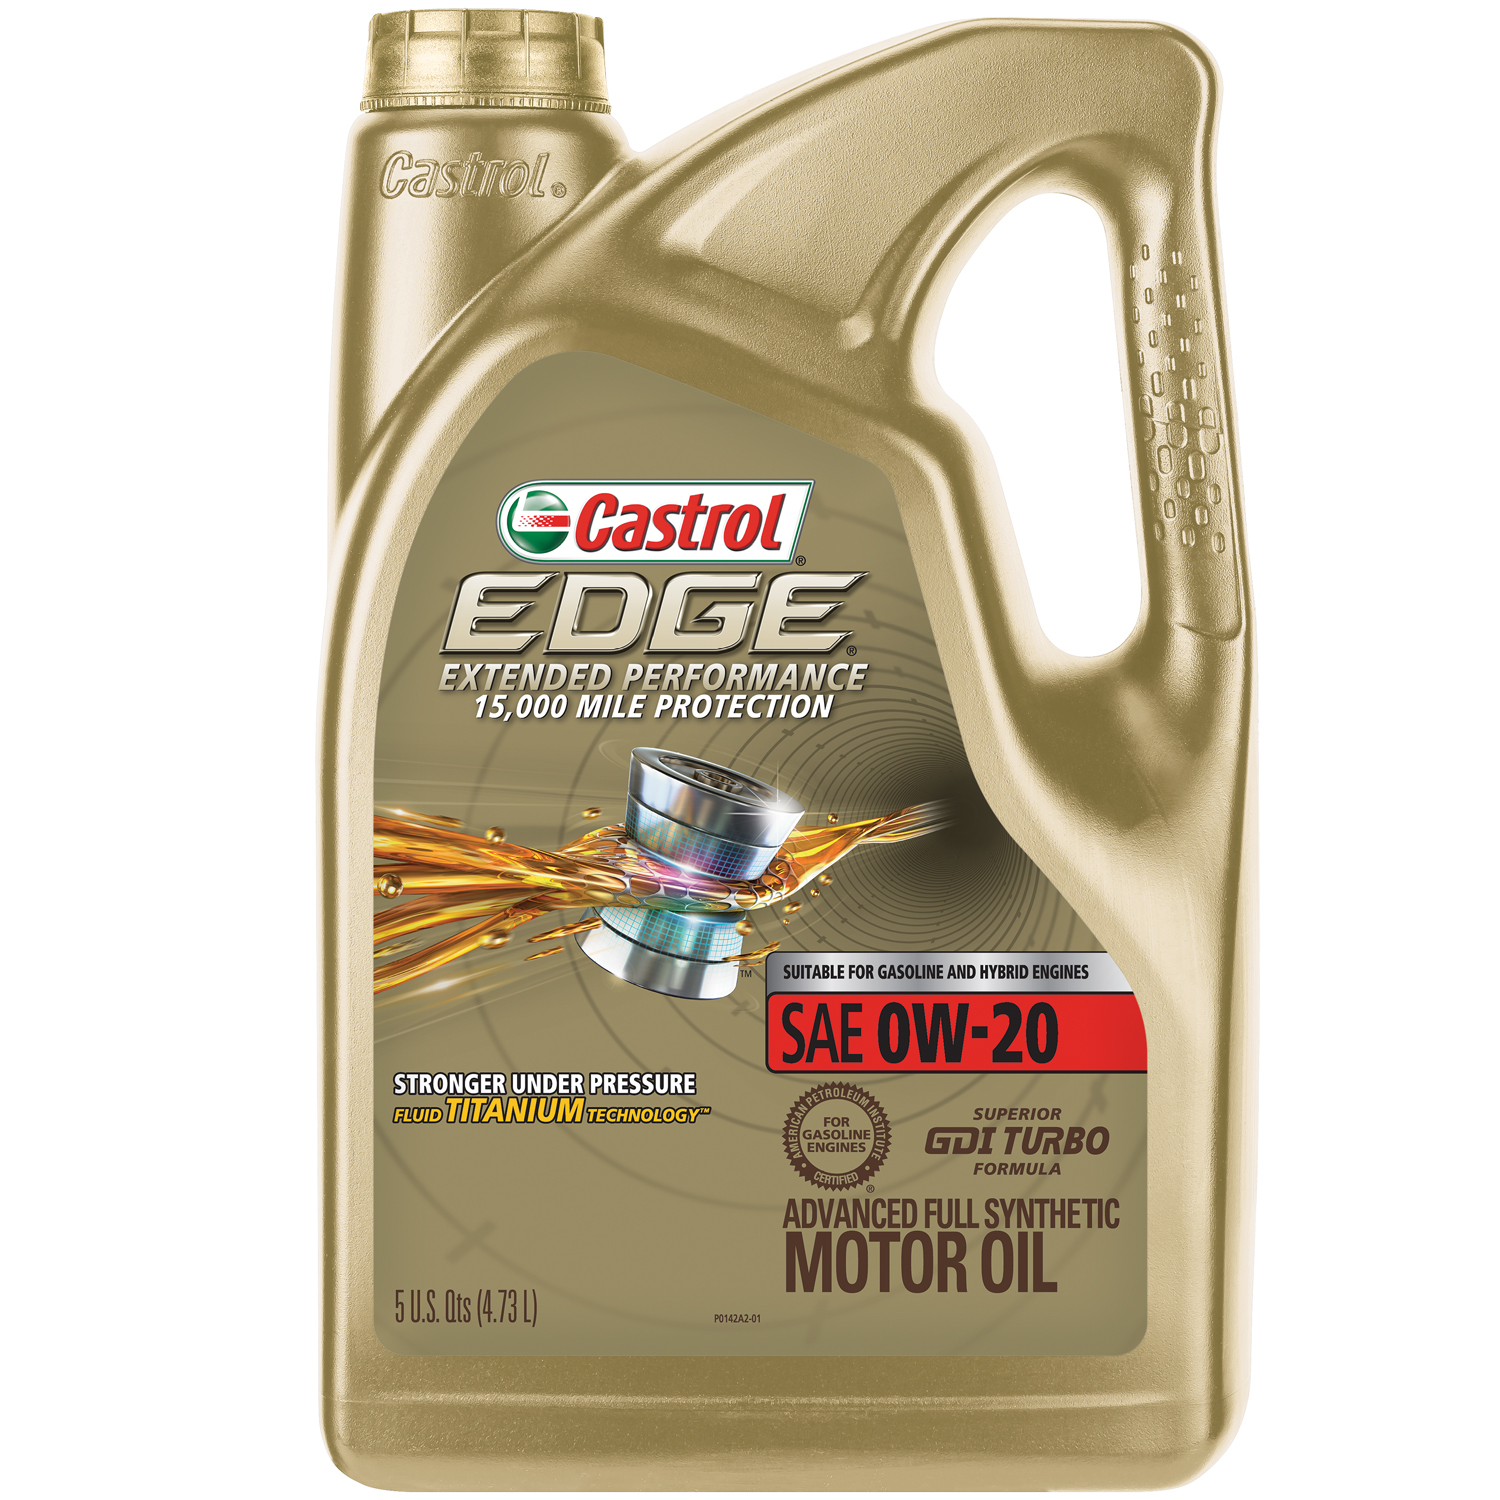 Castrol EDGE Extended Performance 0W-20 Advanced Full Synthetic Motor Oil, 5 QT